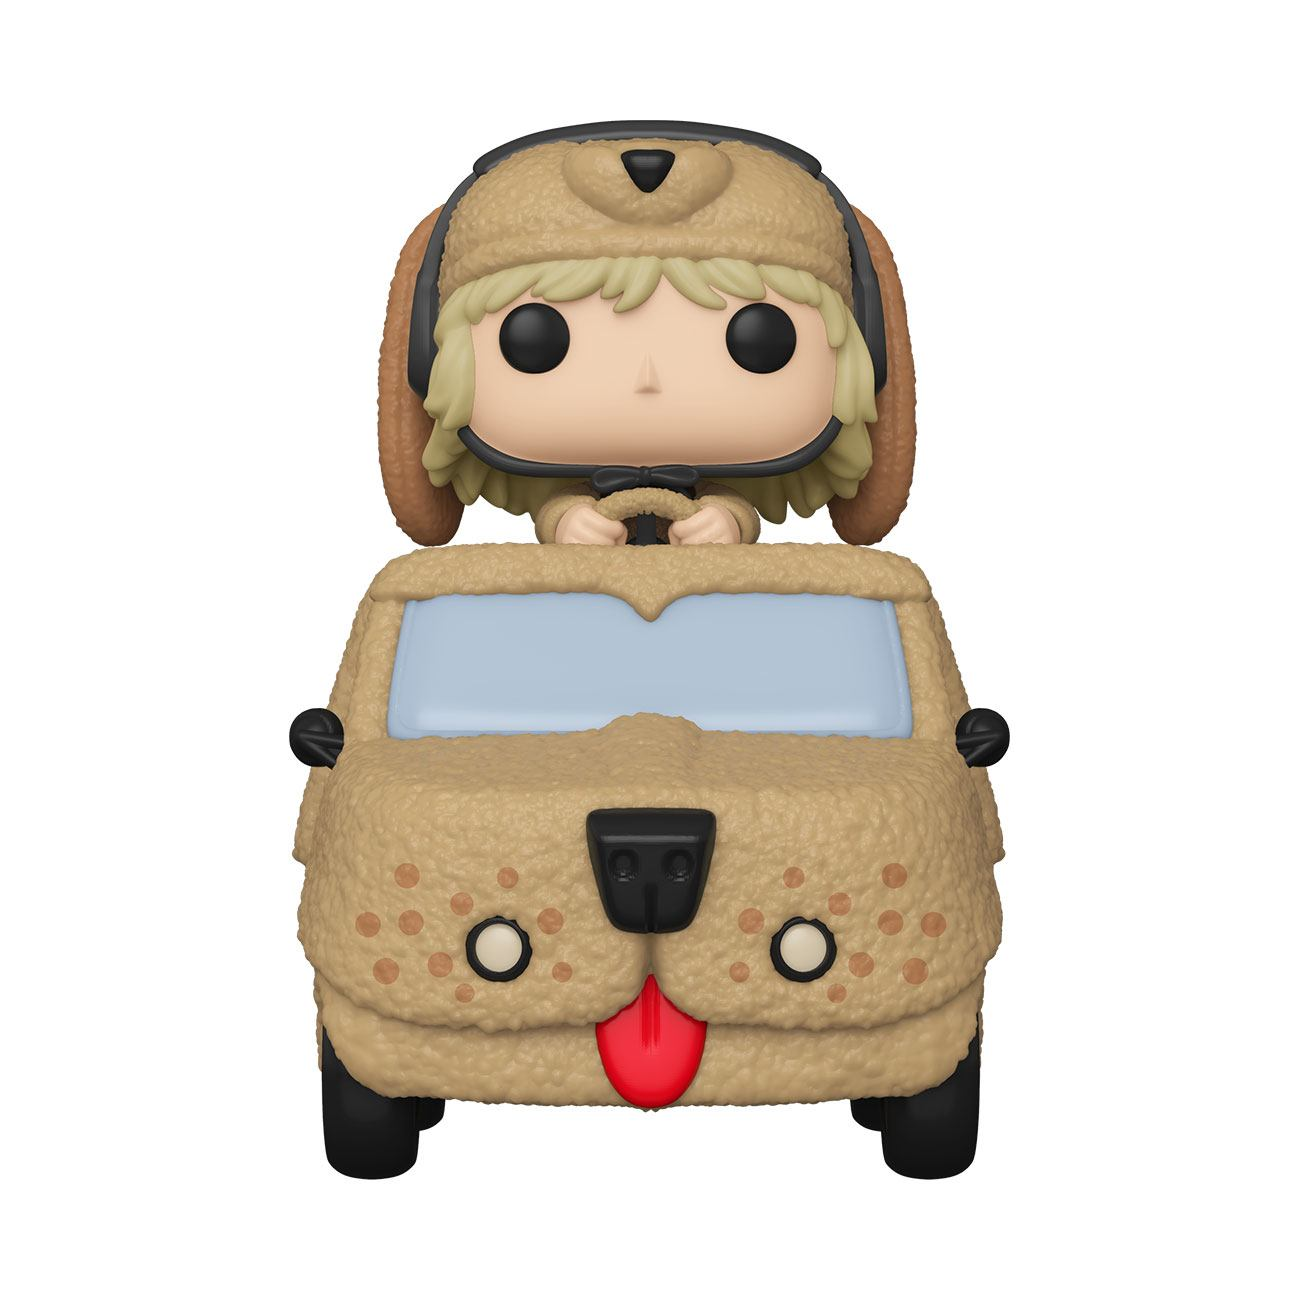 Dumb & Dumber - Harry Dunne in Mutts Cutts Van Funko POP!